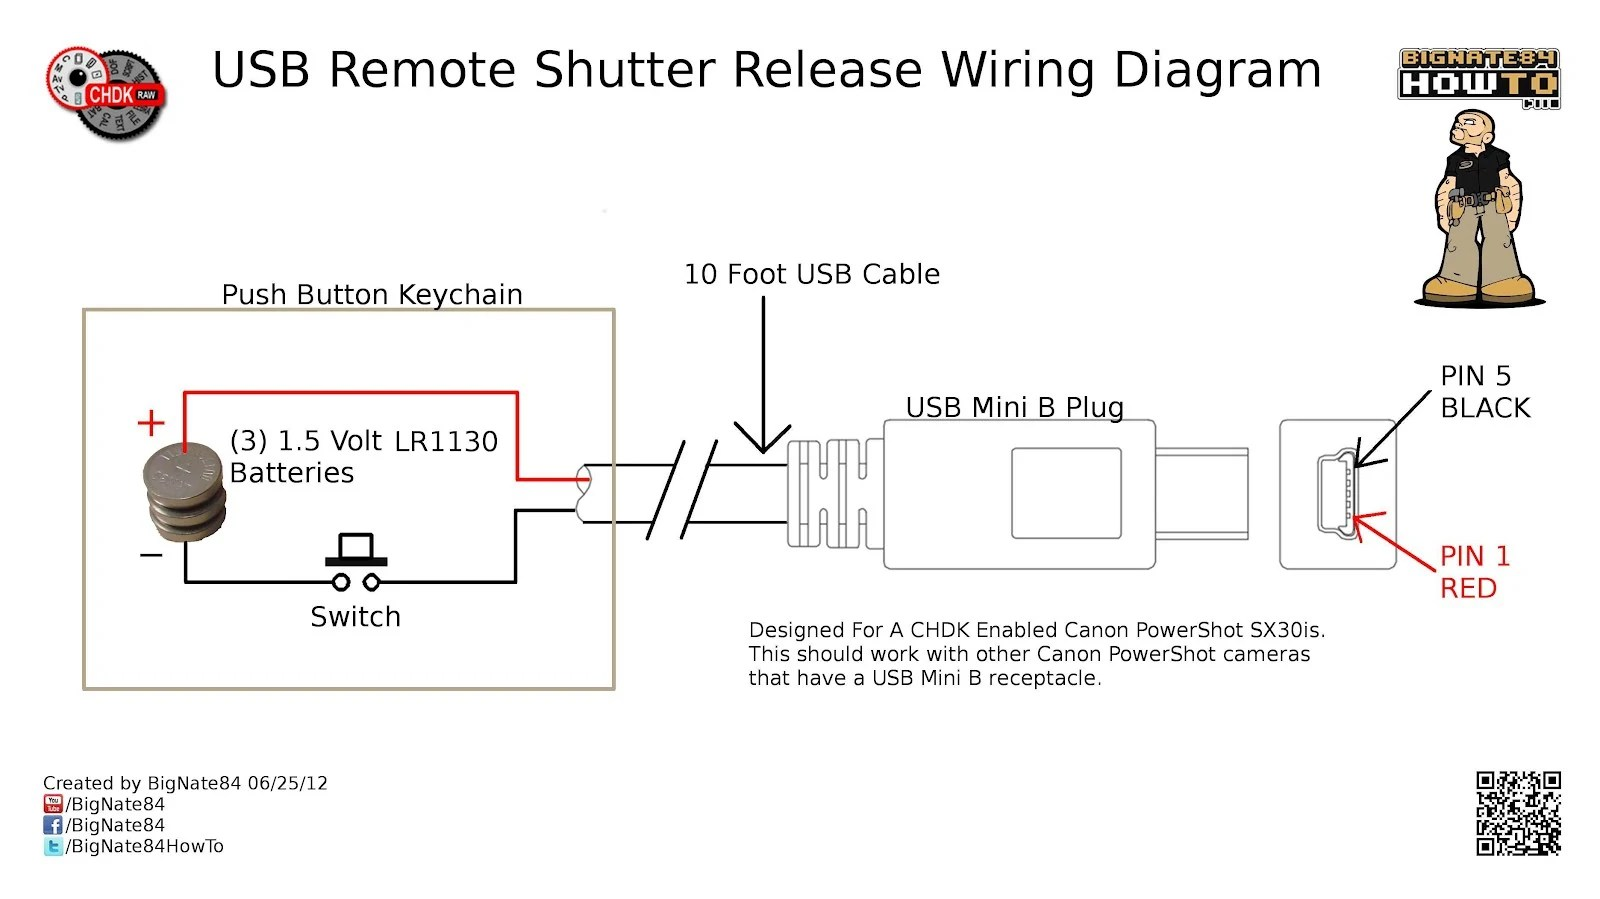 Image  0001 USB Remote Shutter Wiring Diagram 1jpeg